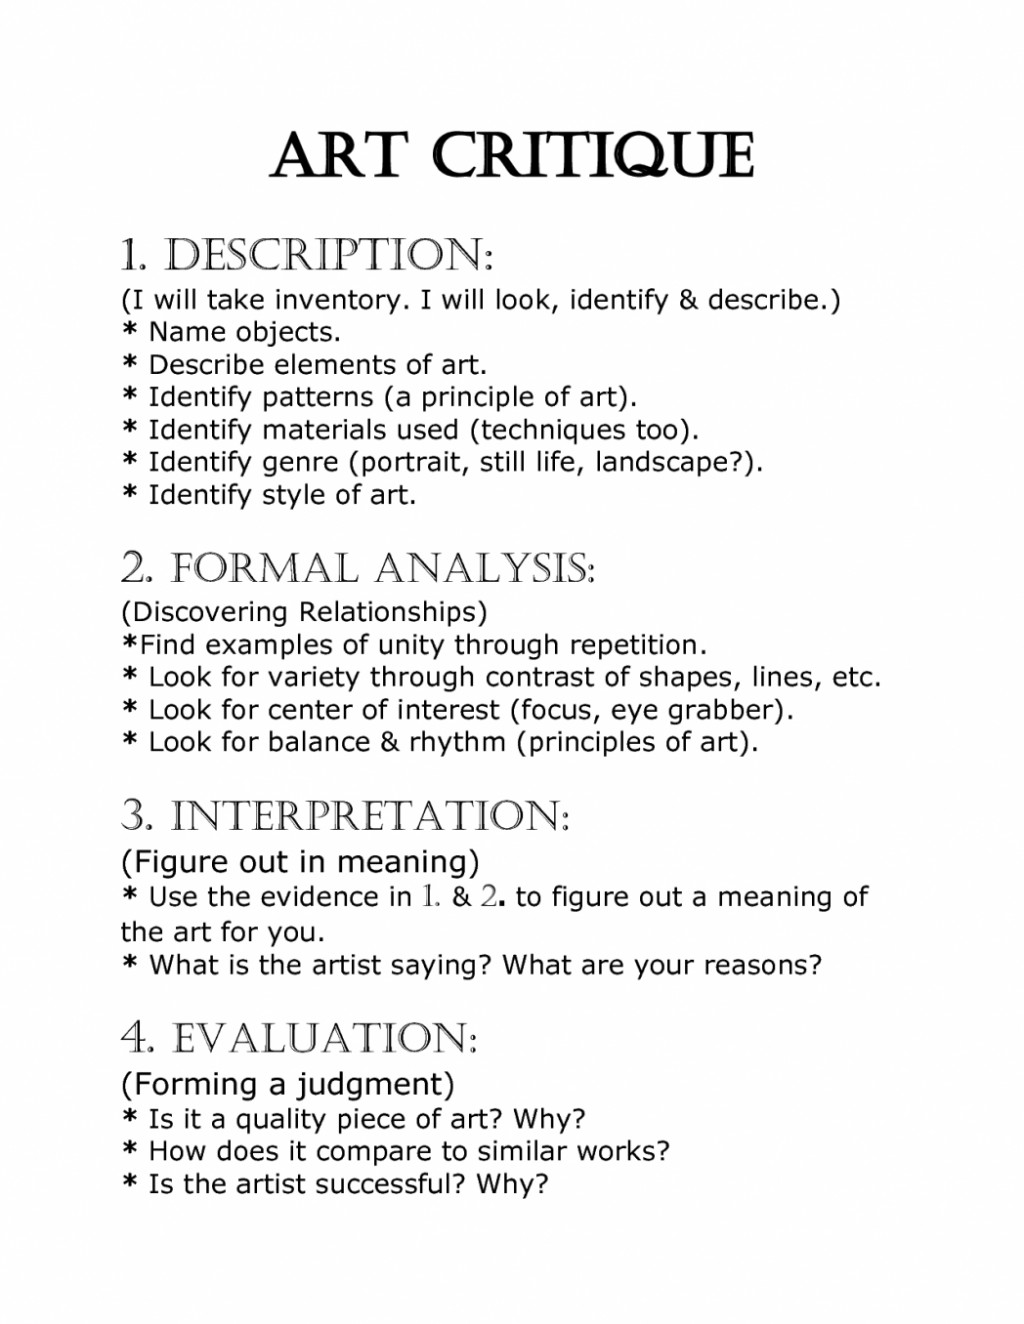 006 Art Essayss Critique Essay Question Ana Scholarship Edexcel Extended Introduction Free Conclusion College 1048x1356 Phenomenal History Pop Outline Large